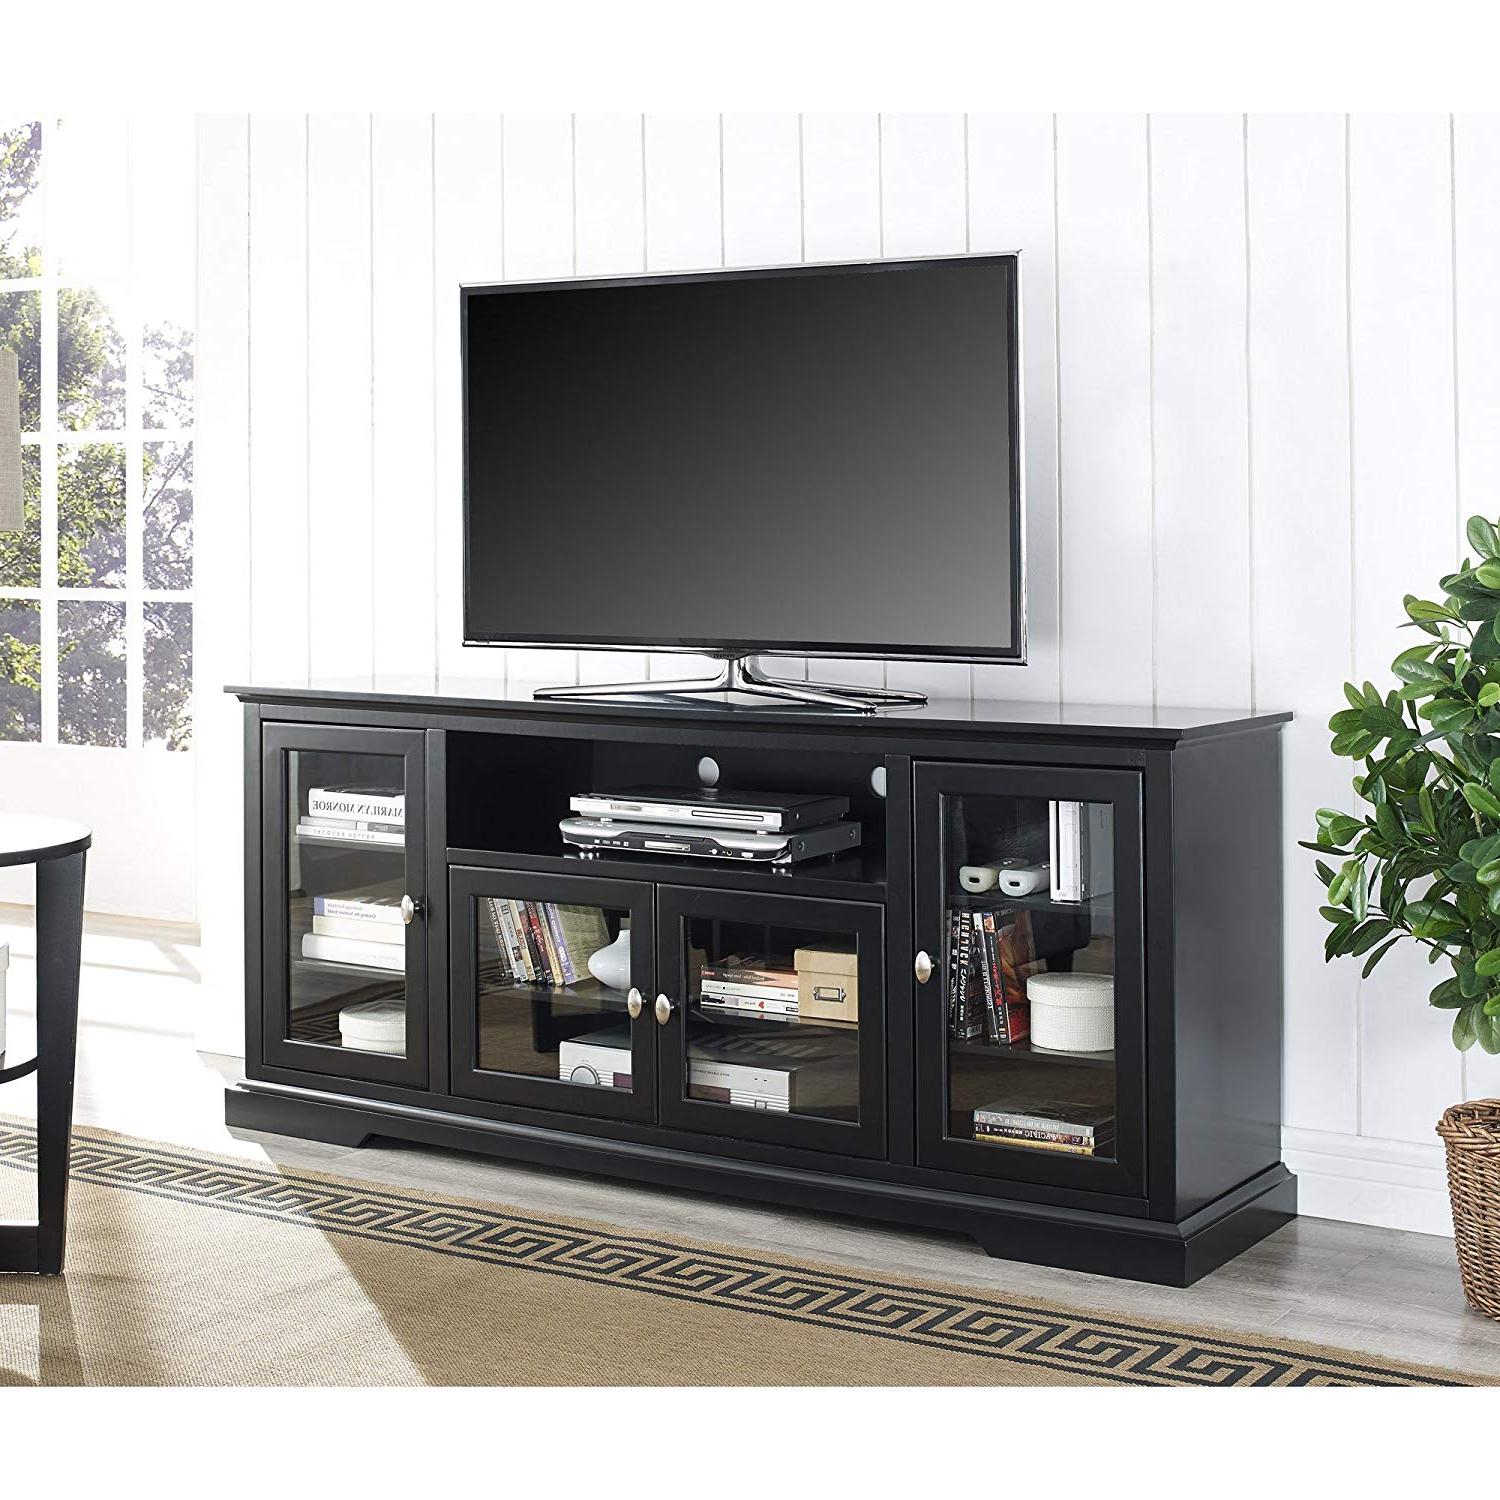 """Widely Used Long Tv Stands Furniture With Regard To Amazon: We Furniture 70"""" Highboy Style Wood Tv Stand Console (View 20 of 20)"""